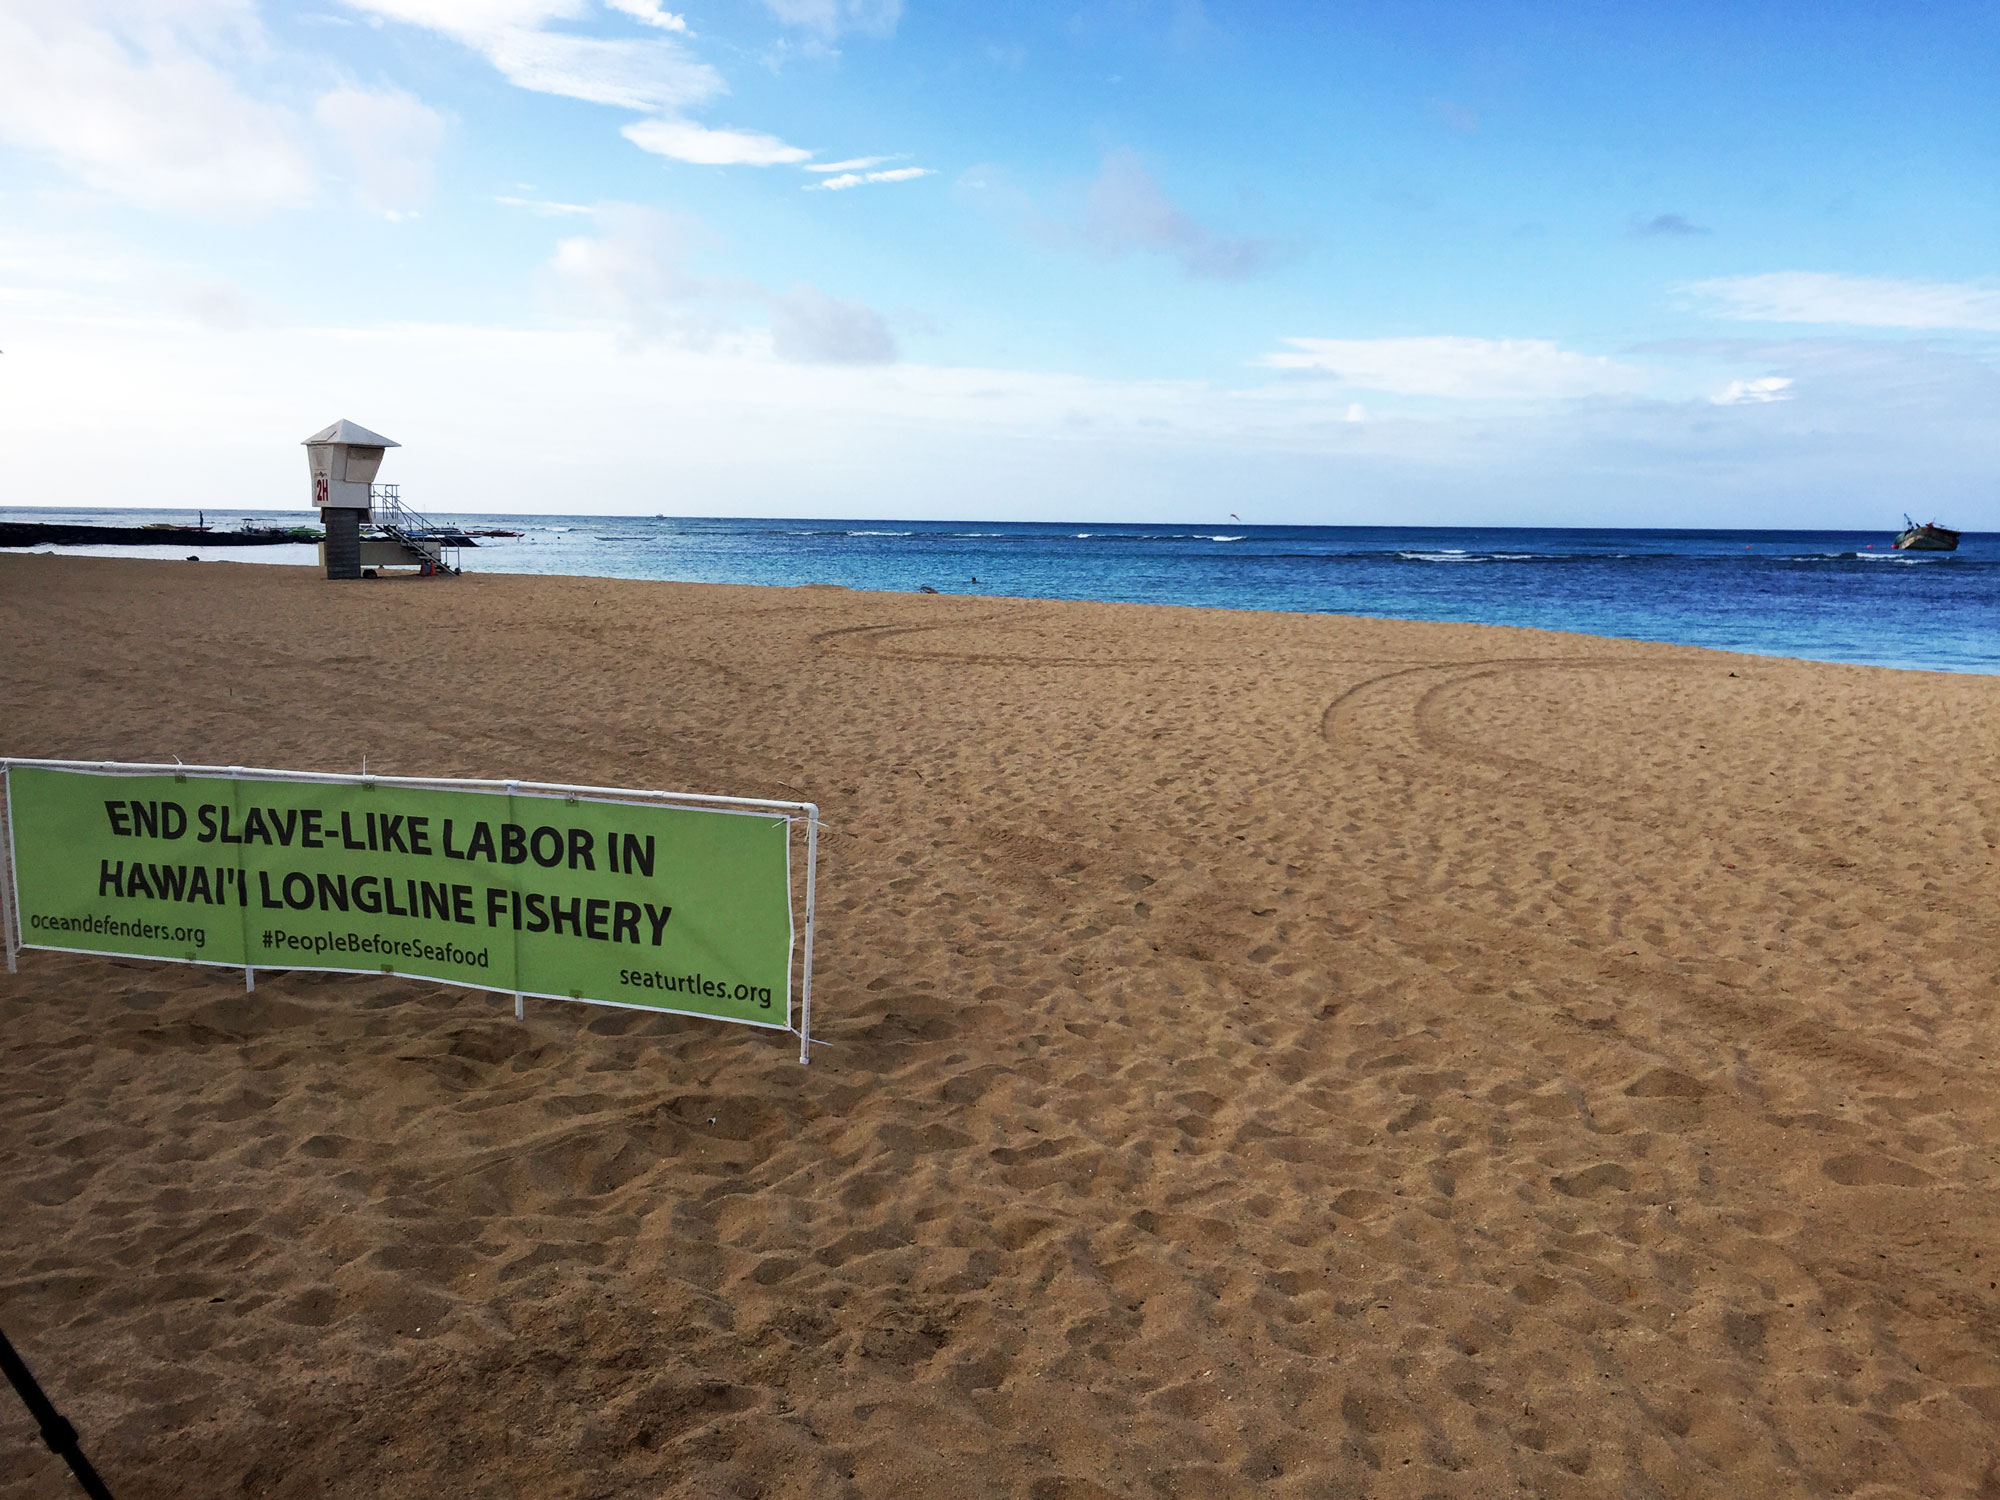 Activists Raise Awareness About Human Rights Abuses in Hawaiian Longline Fishery